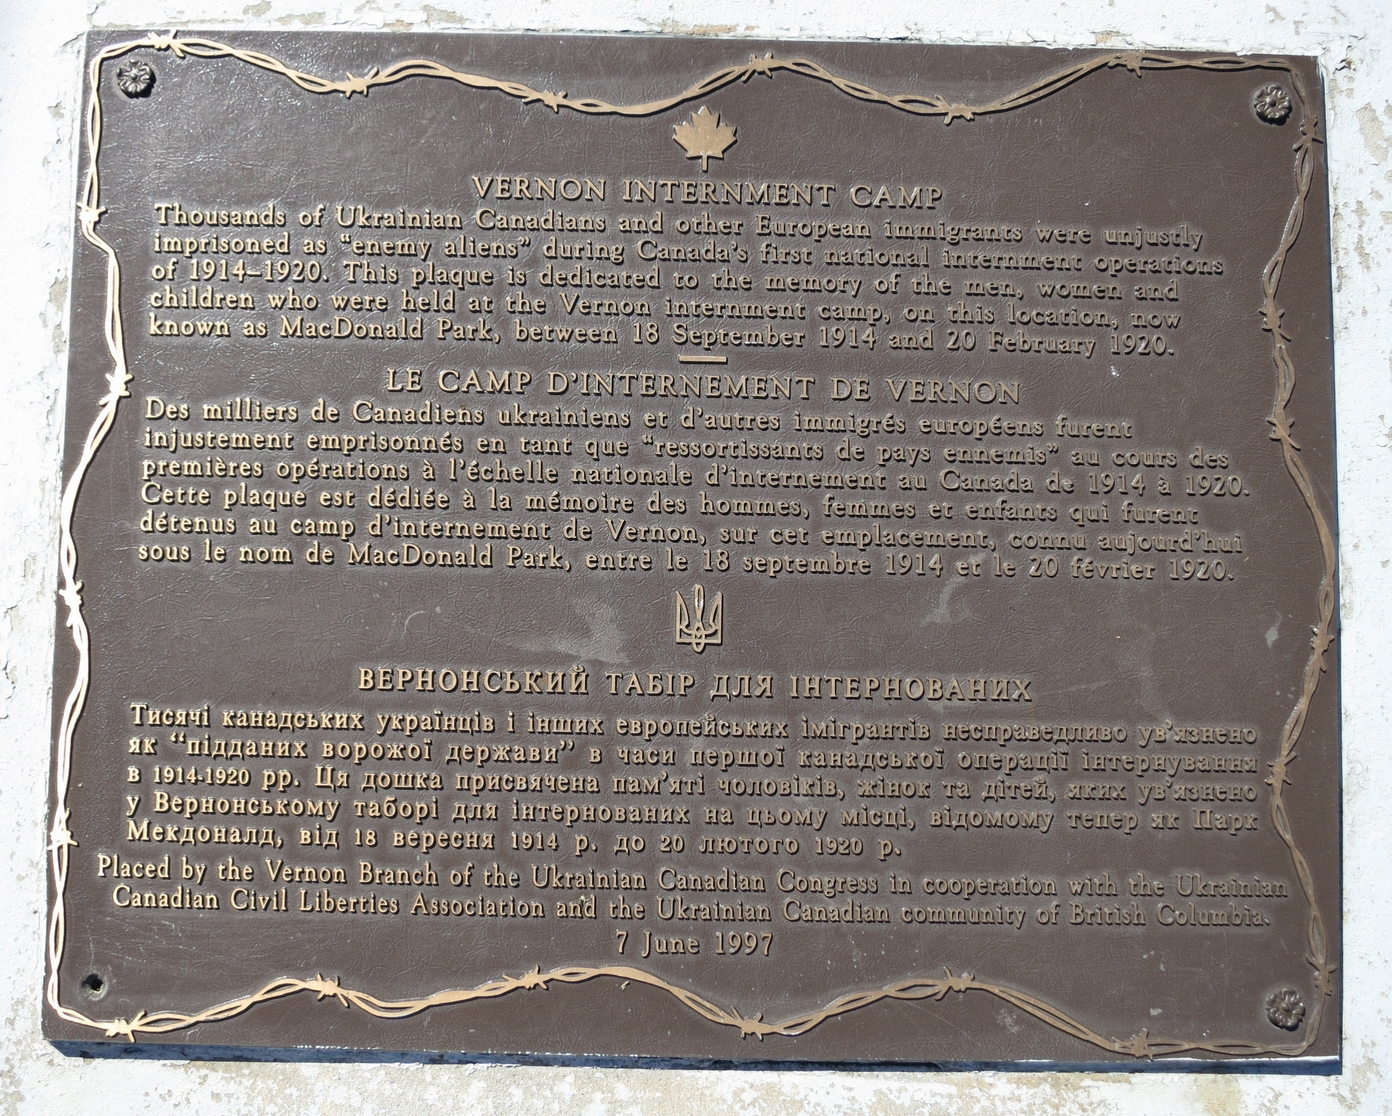 Vernon Internment Camp plaque cropped